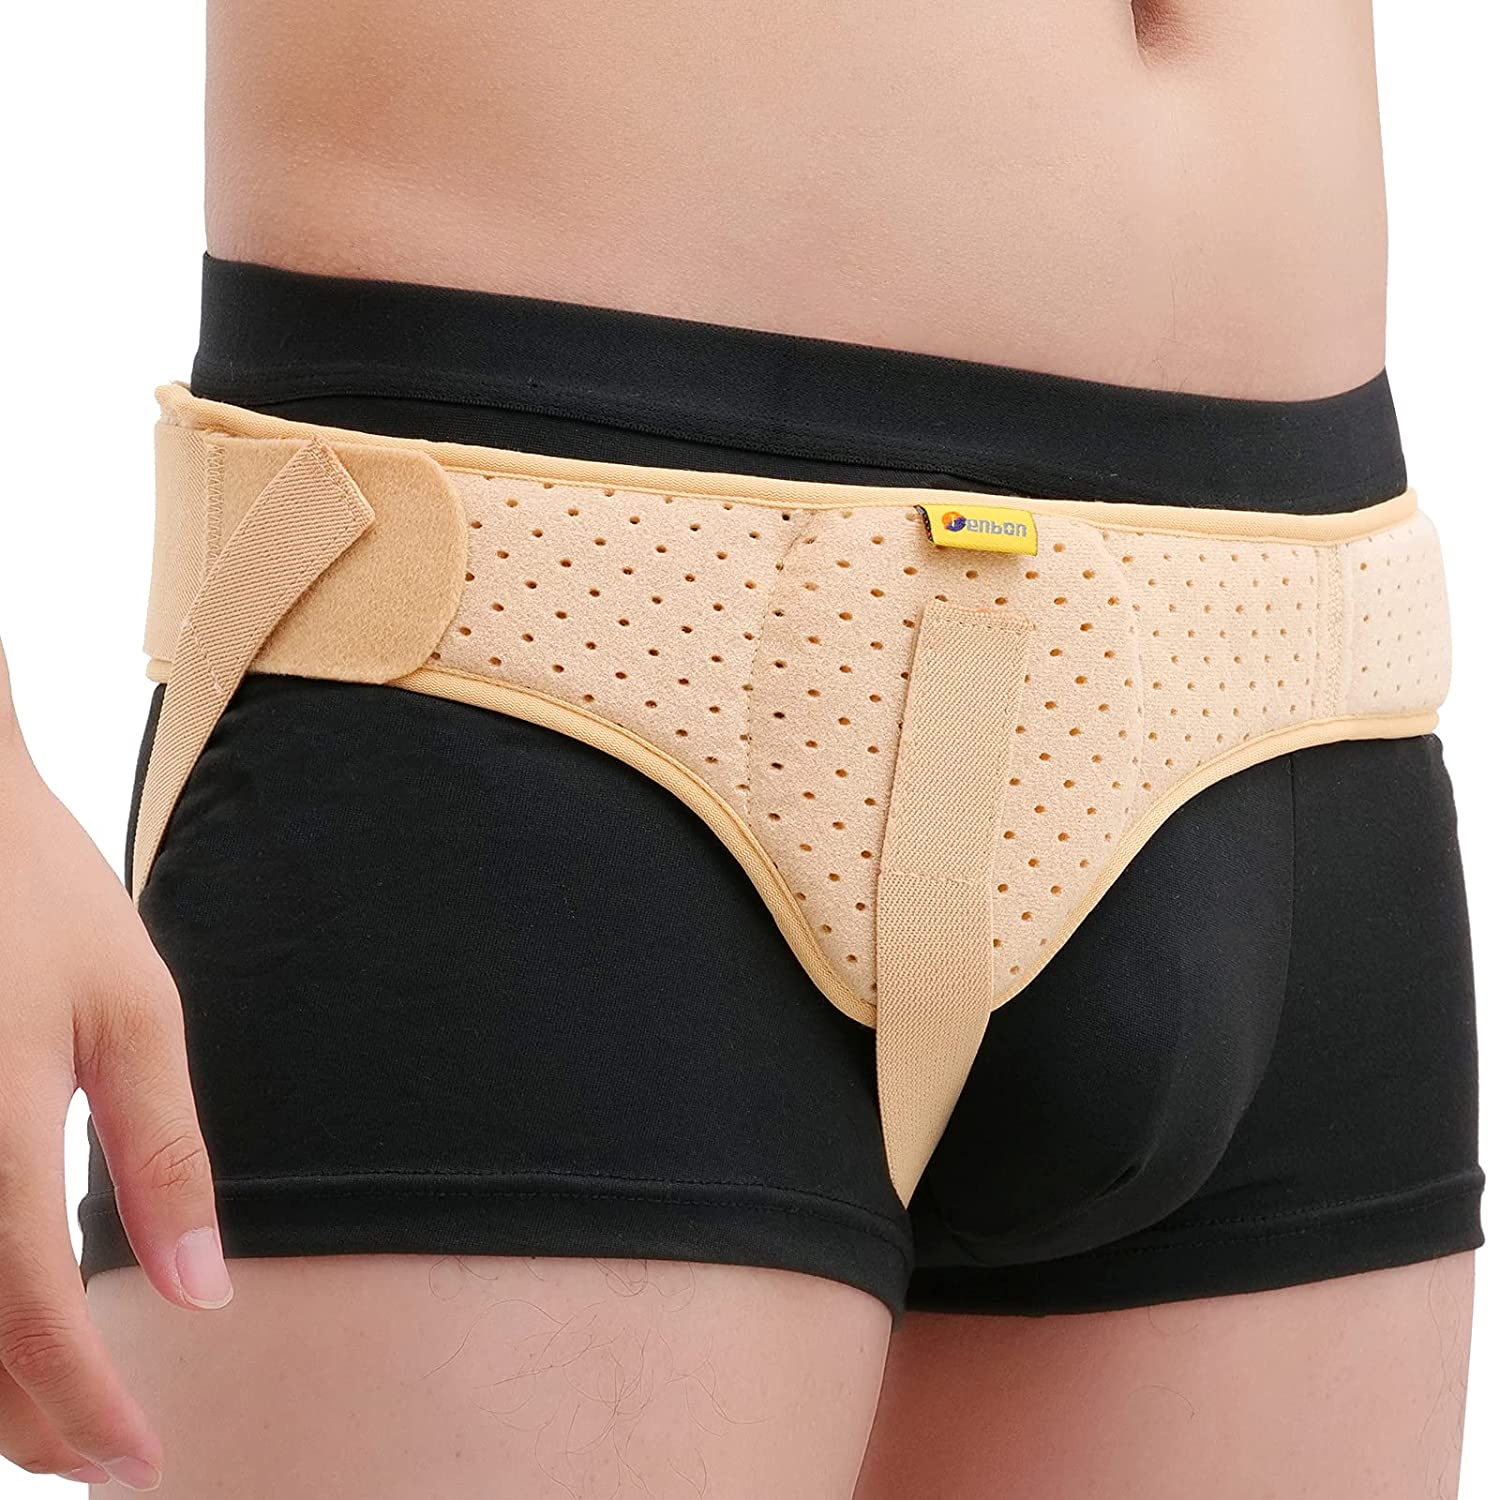 Hernia Belt for Fashion Max 71% OFF Men and Truss Inguinal Support Women